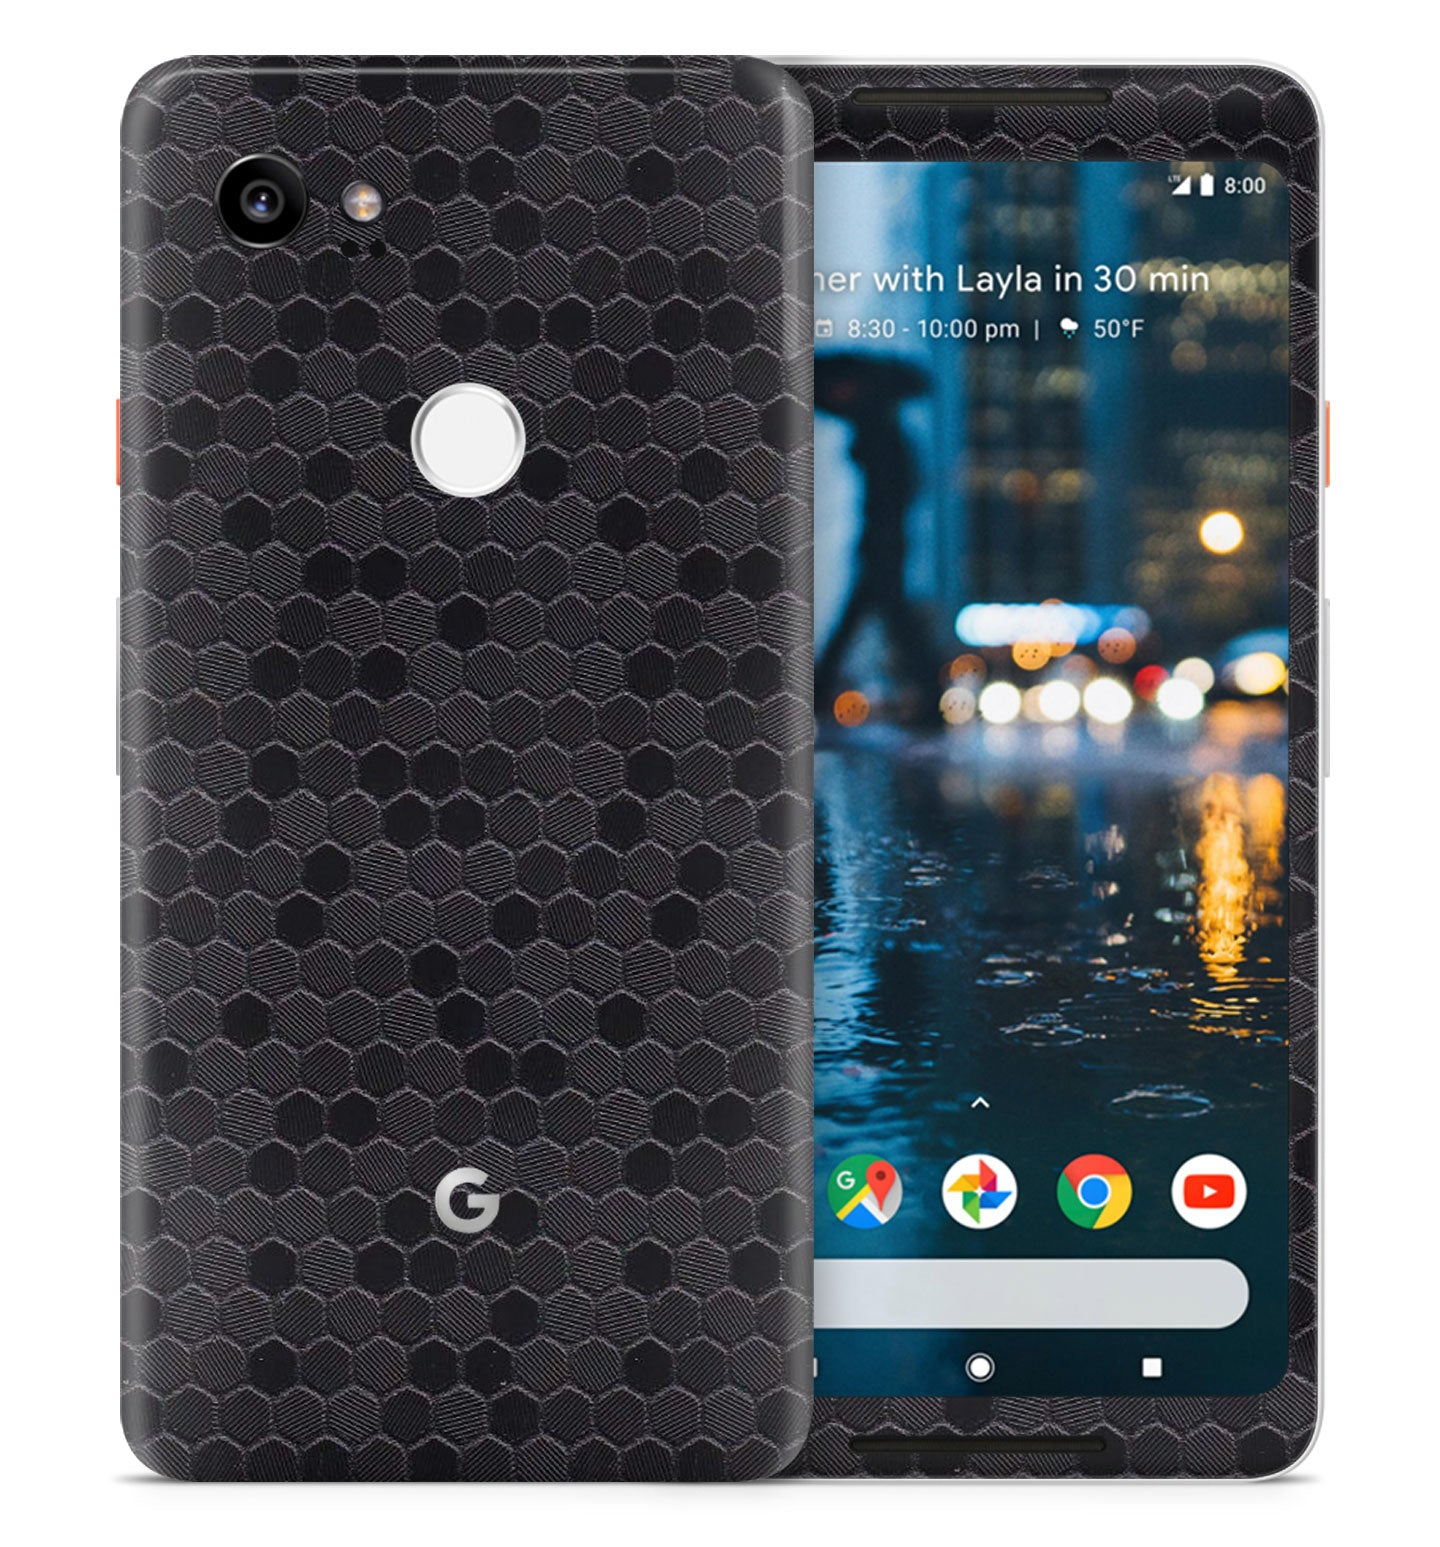 google pixel 2xl phone skins textured